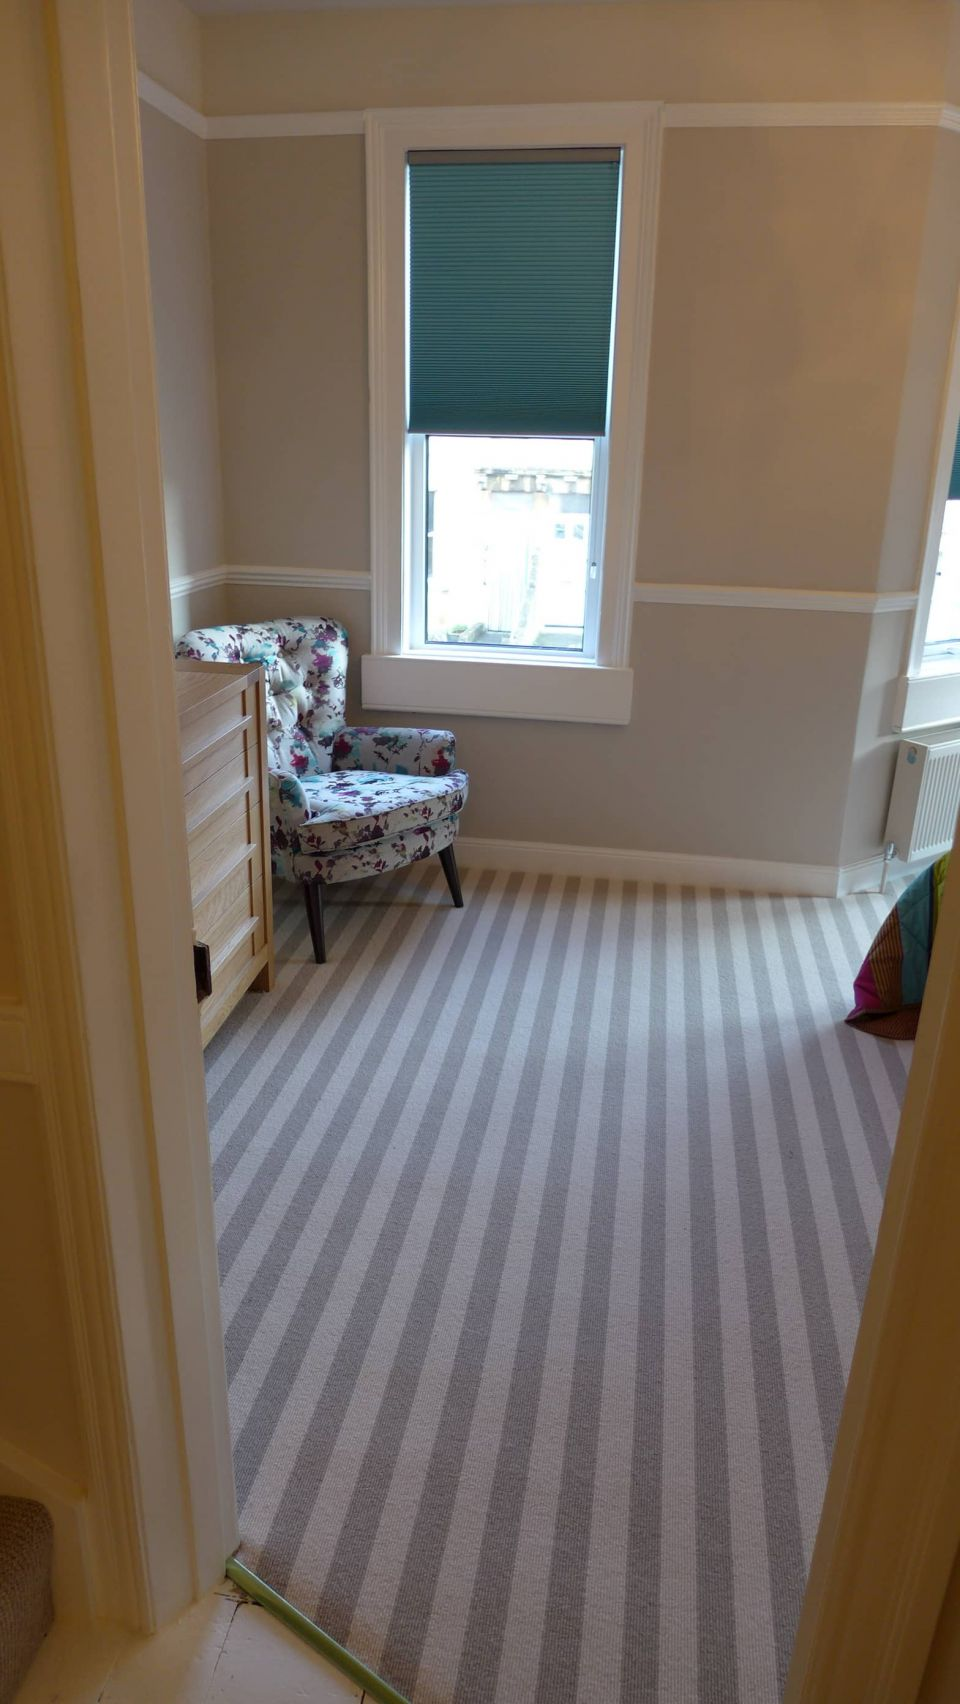 stripy bedroom carpet